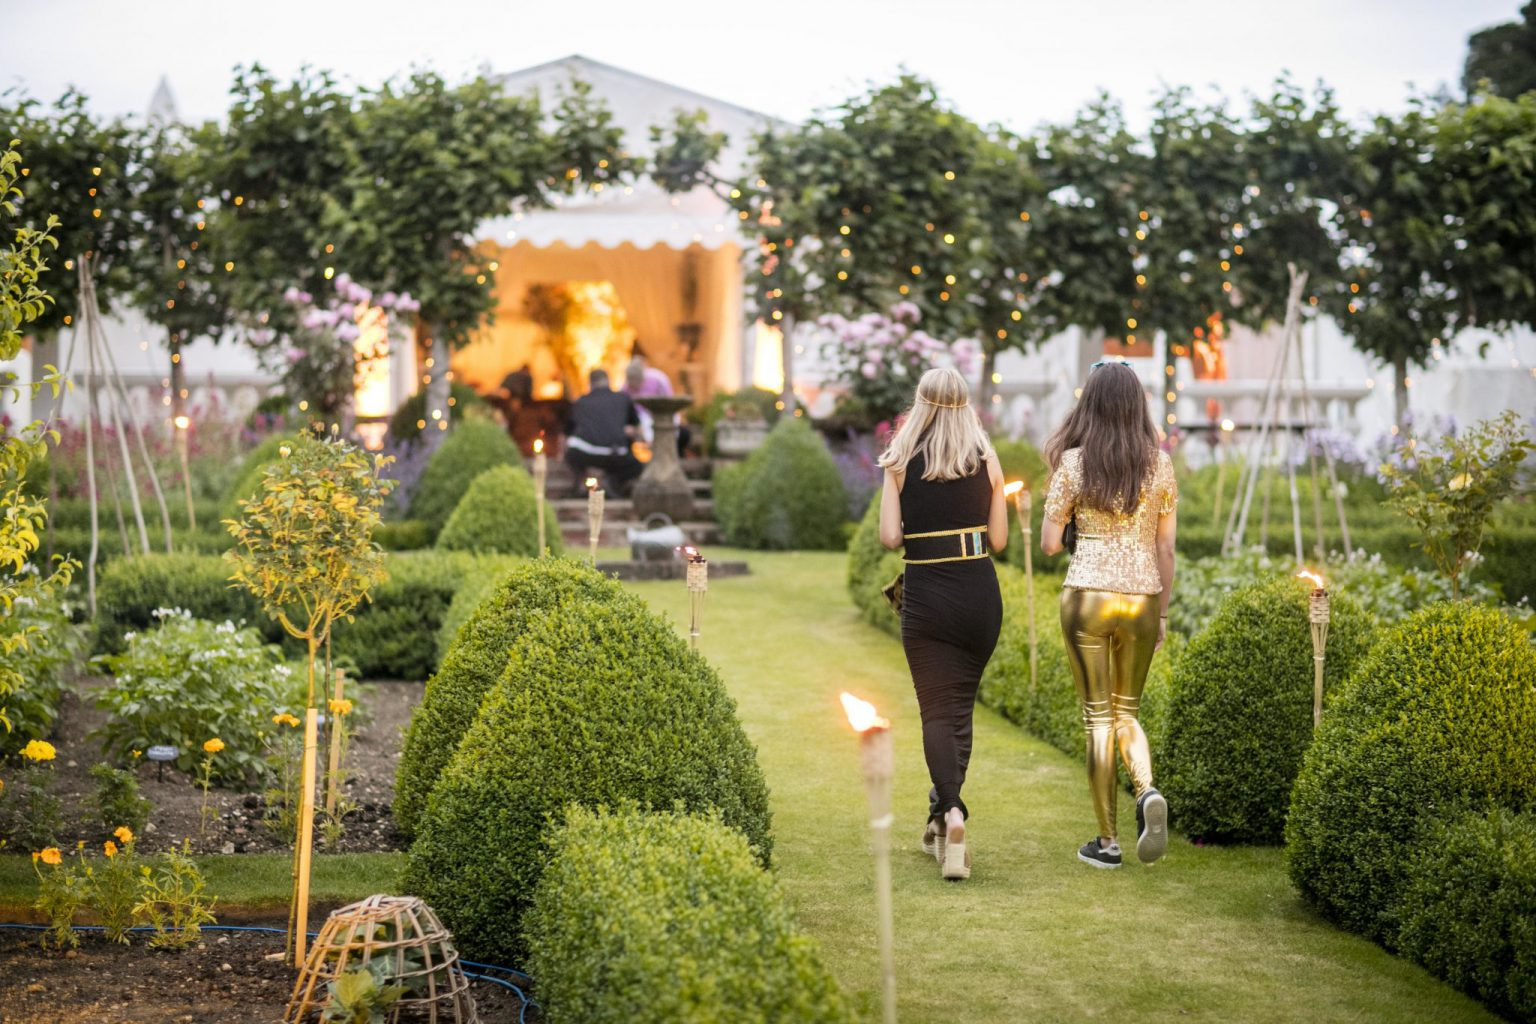 cotswold garden party - arrival of guests